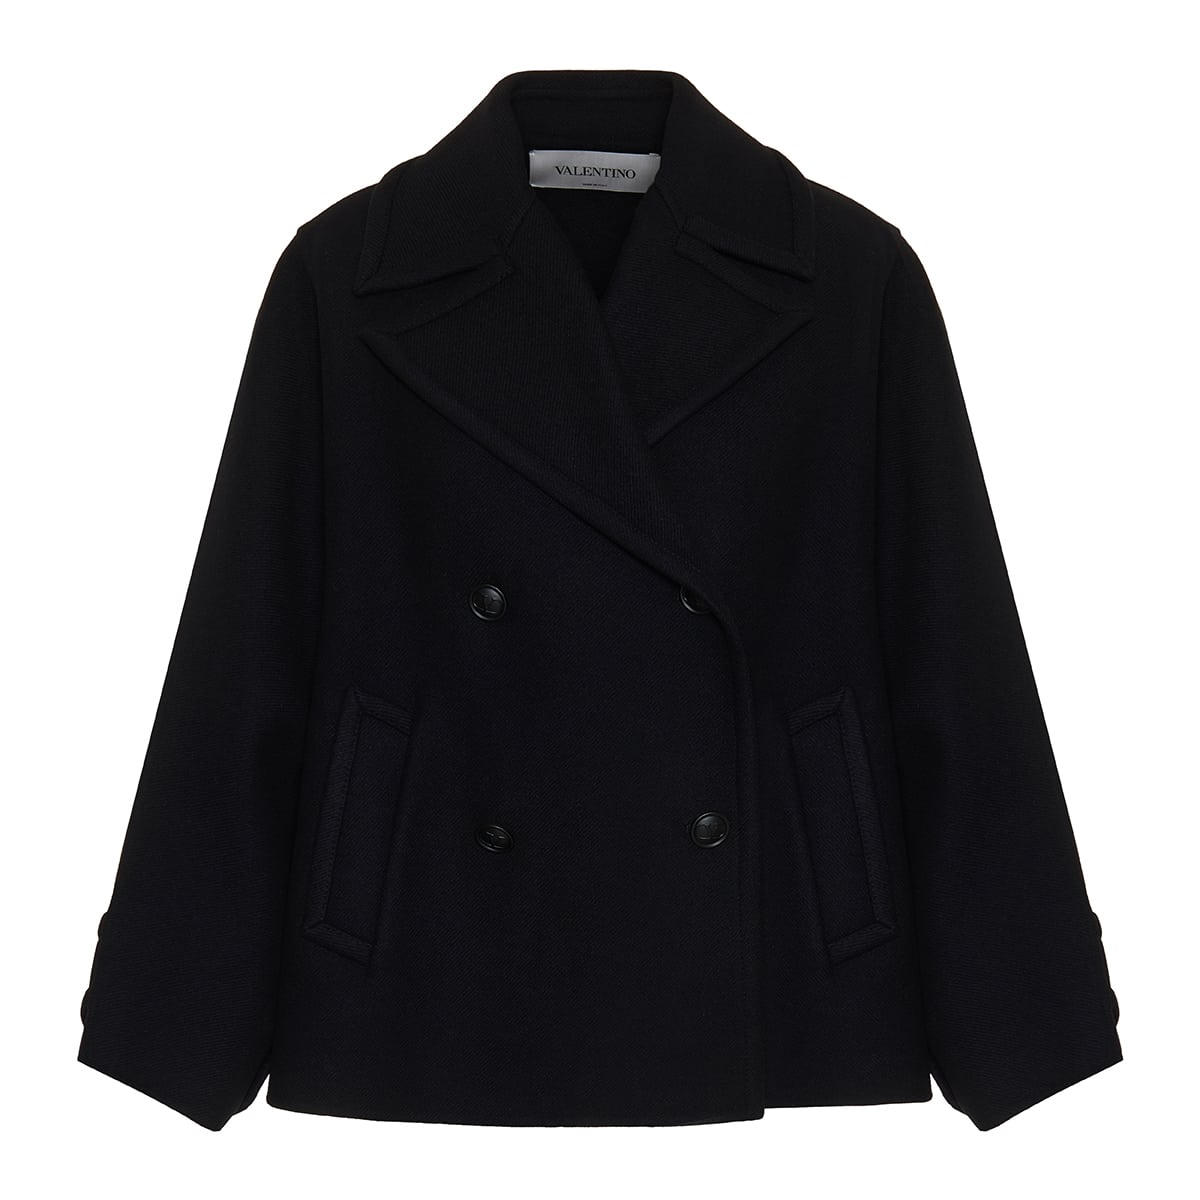 Oversized double-breasted wool coat